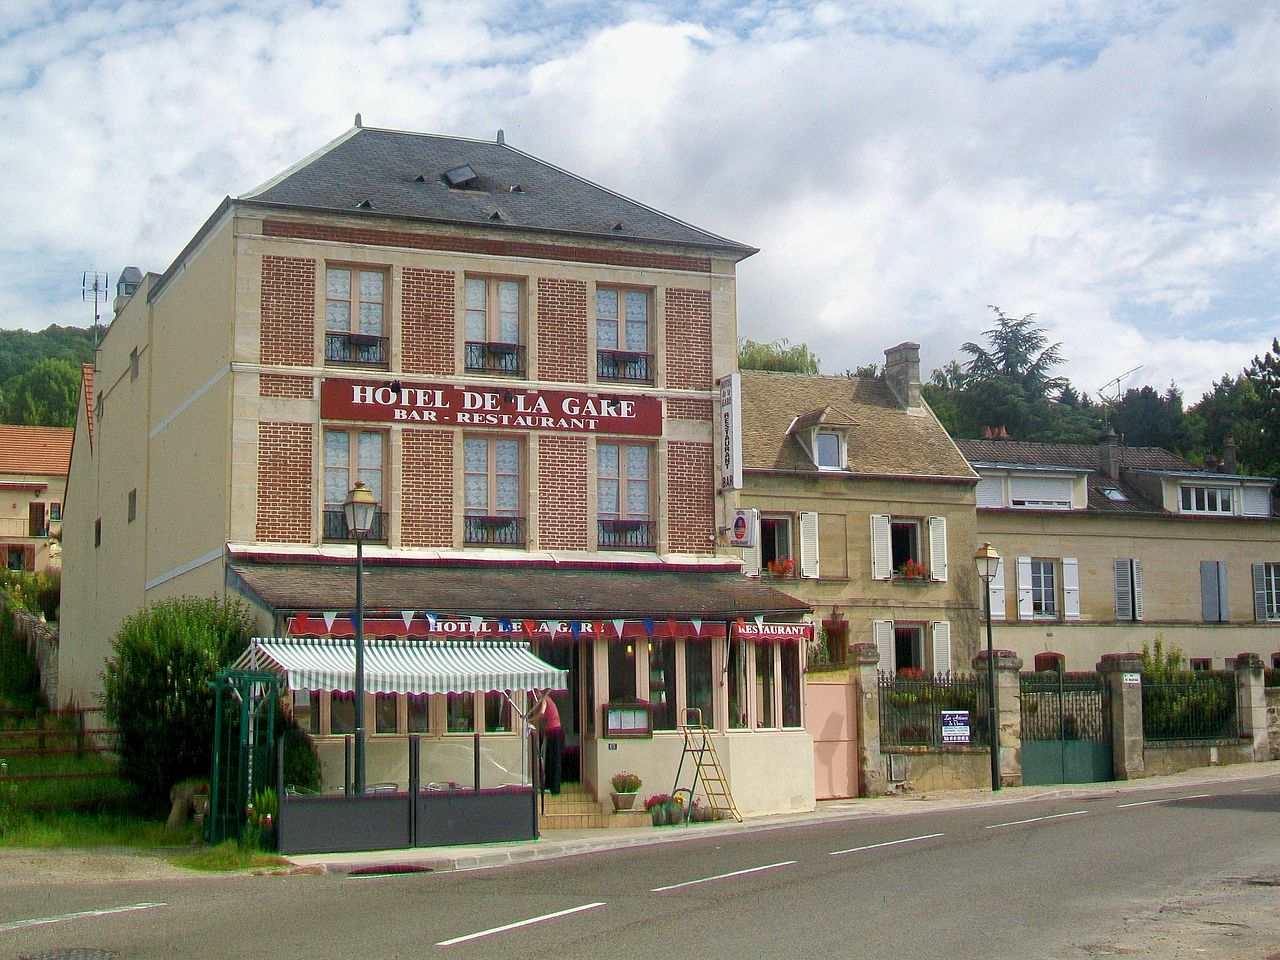 Hotel Pres Gare Montparnabe Pas Cher